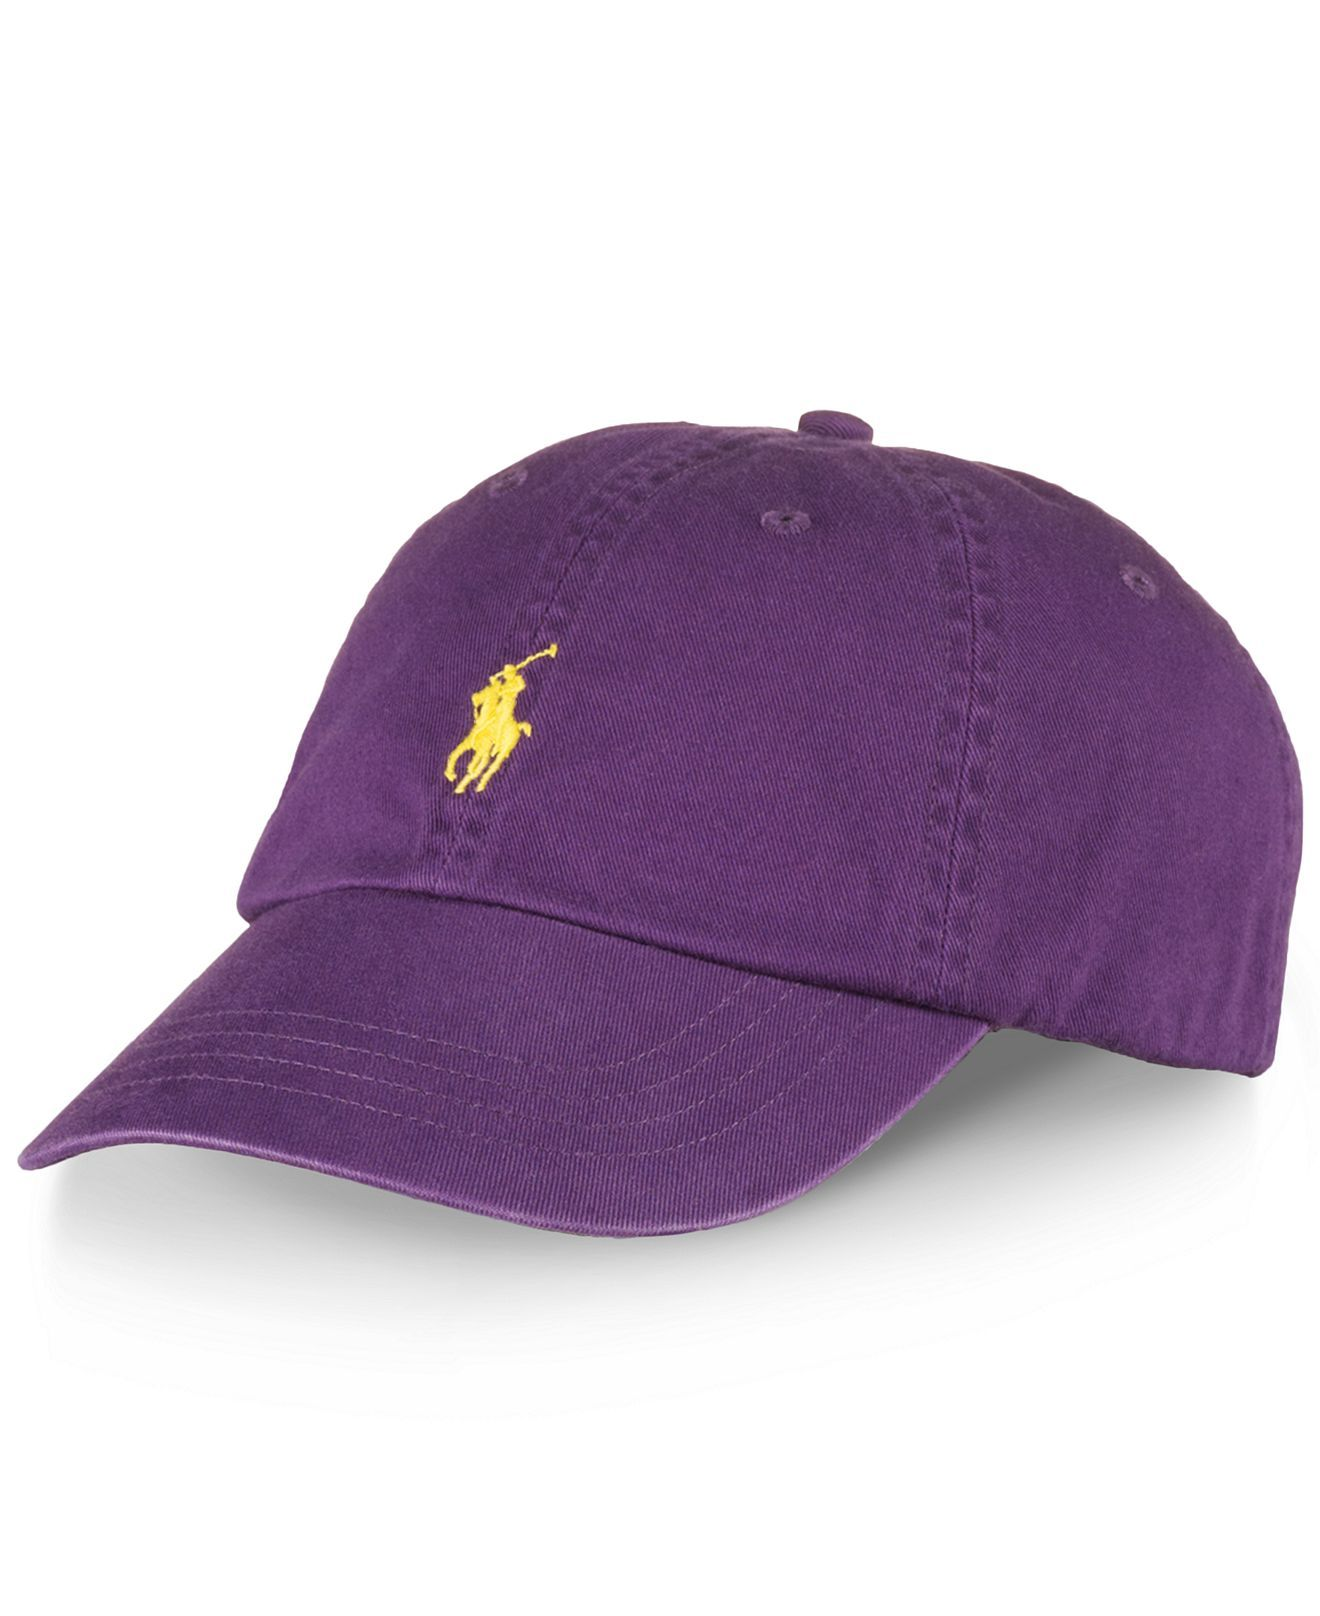 Polo Ralph Lauren Hat, Classic Chino Sports Cap - Hats - Men - Macy's